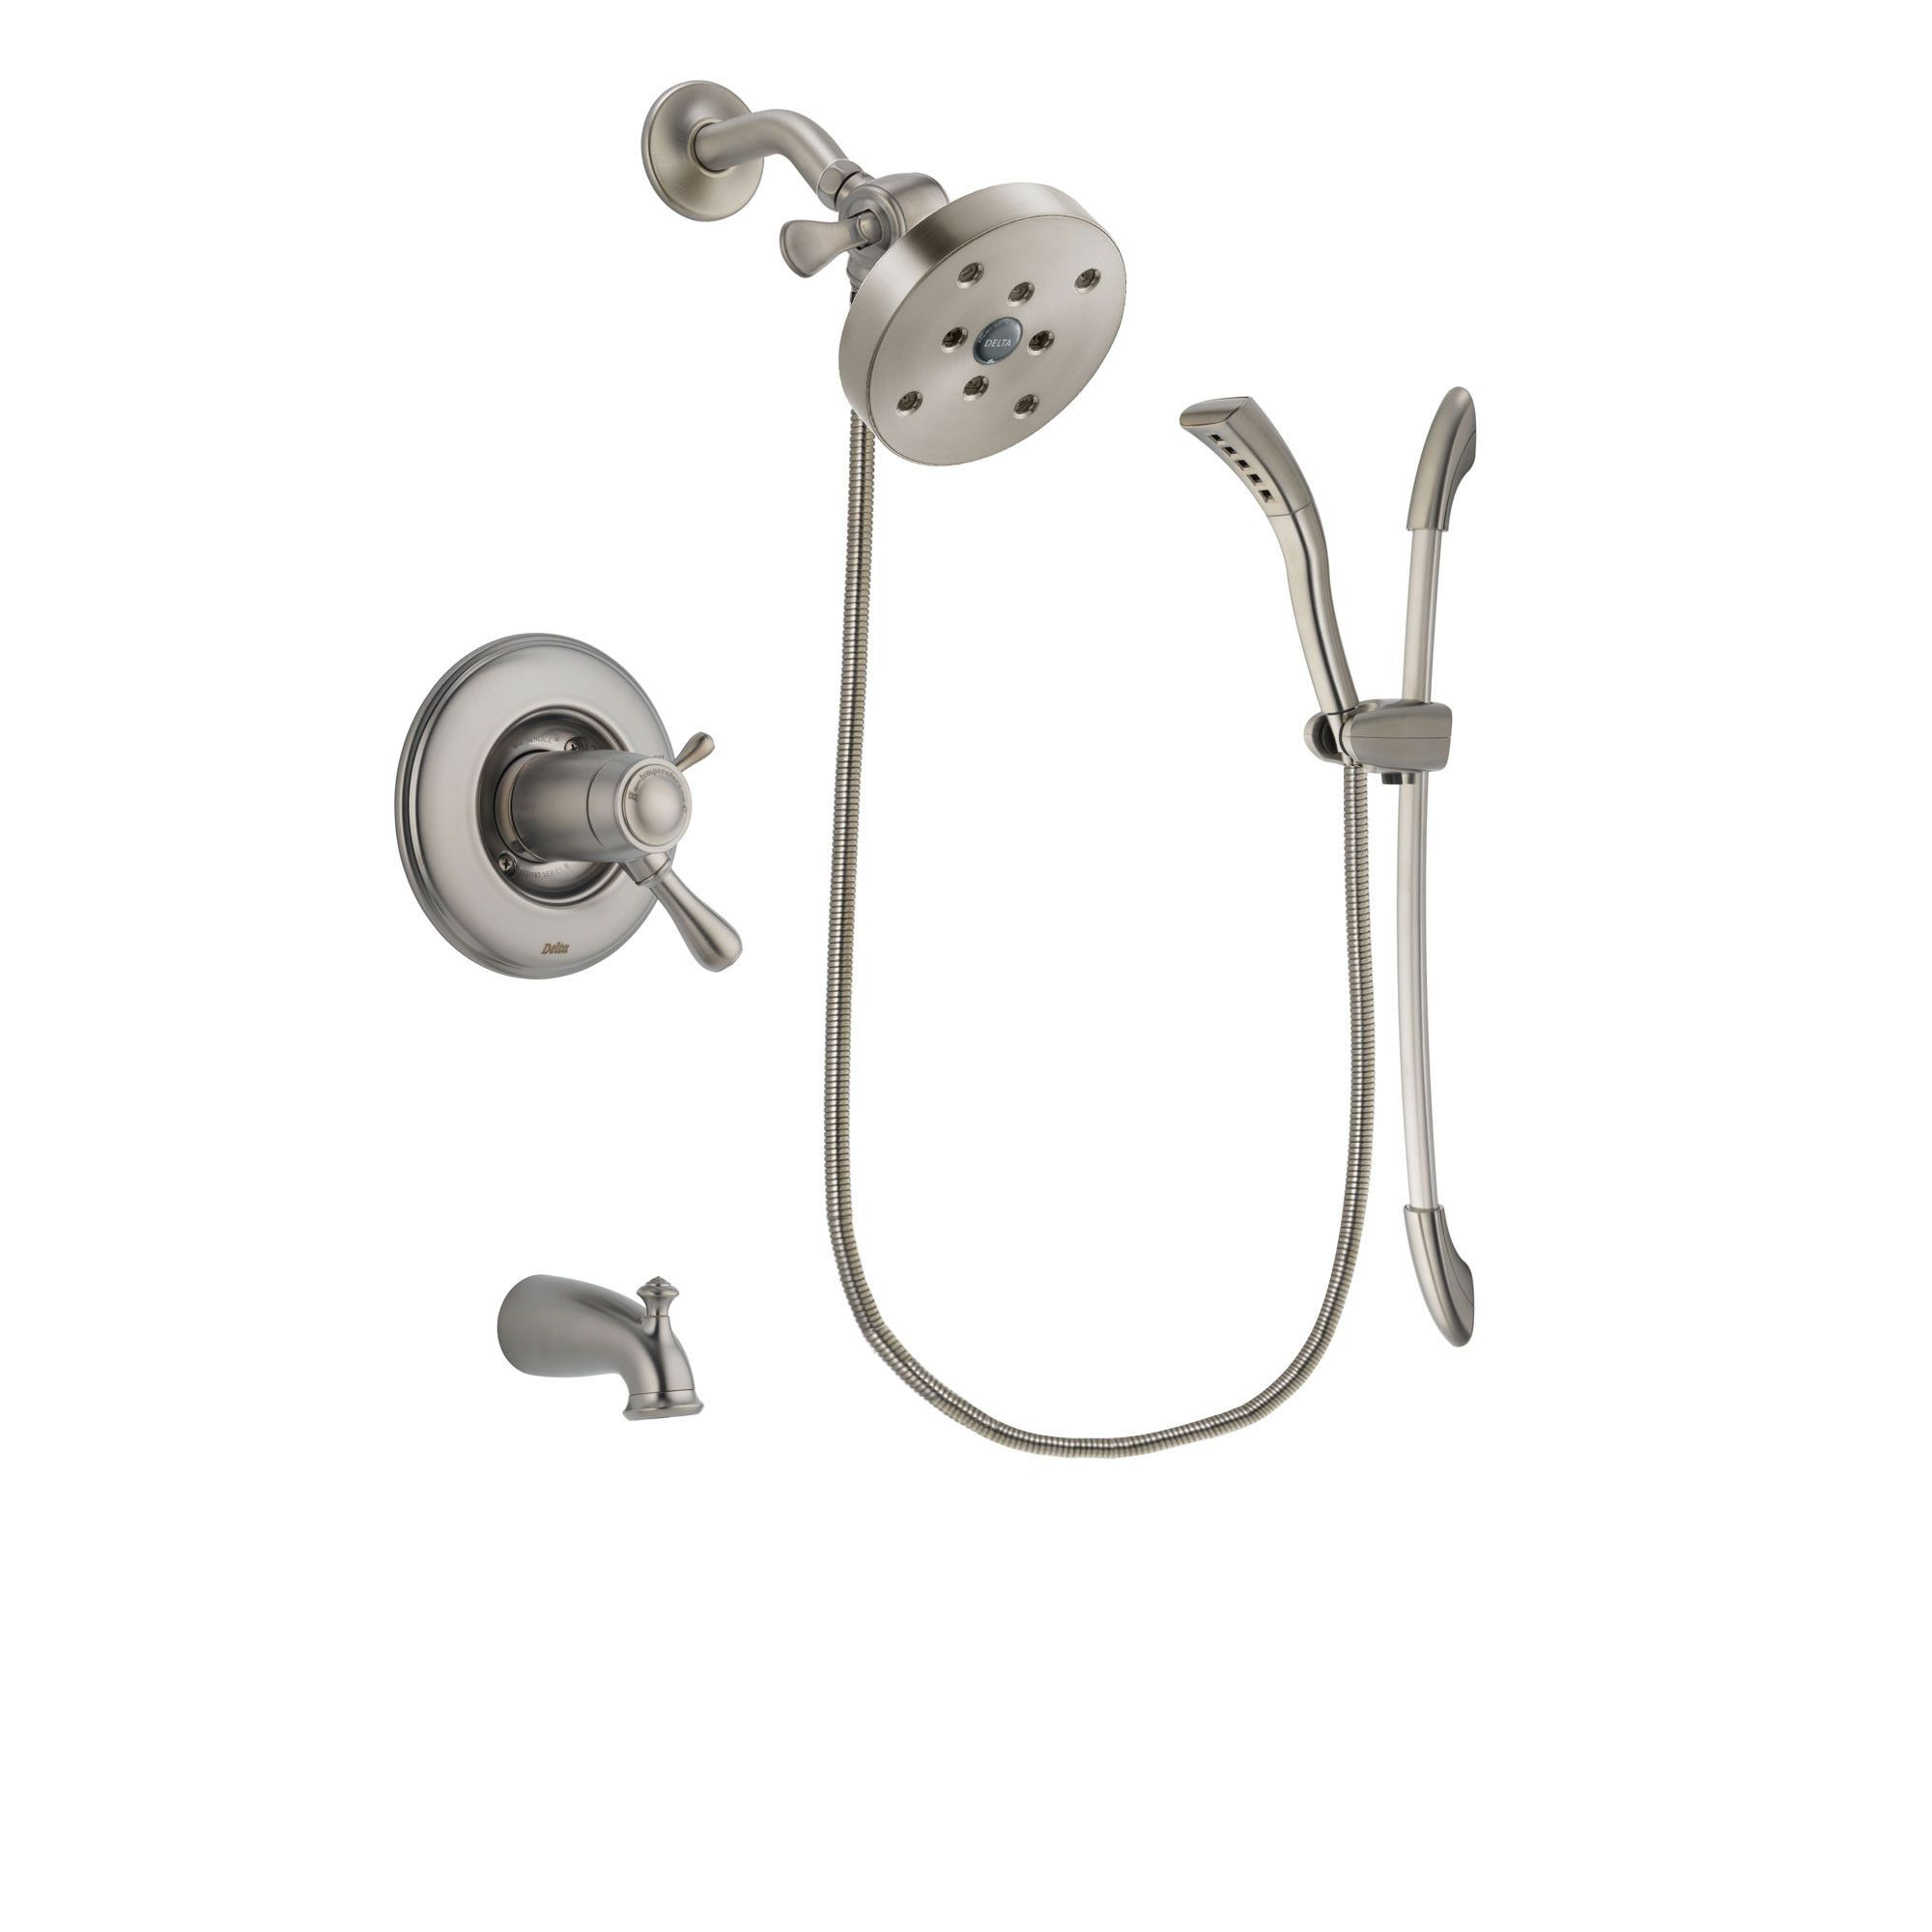 Delta Leland Stainless Steel Finish Thermostatic Tub and Shower ...